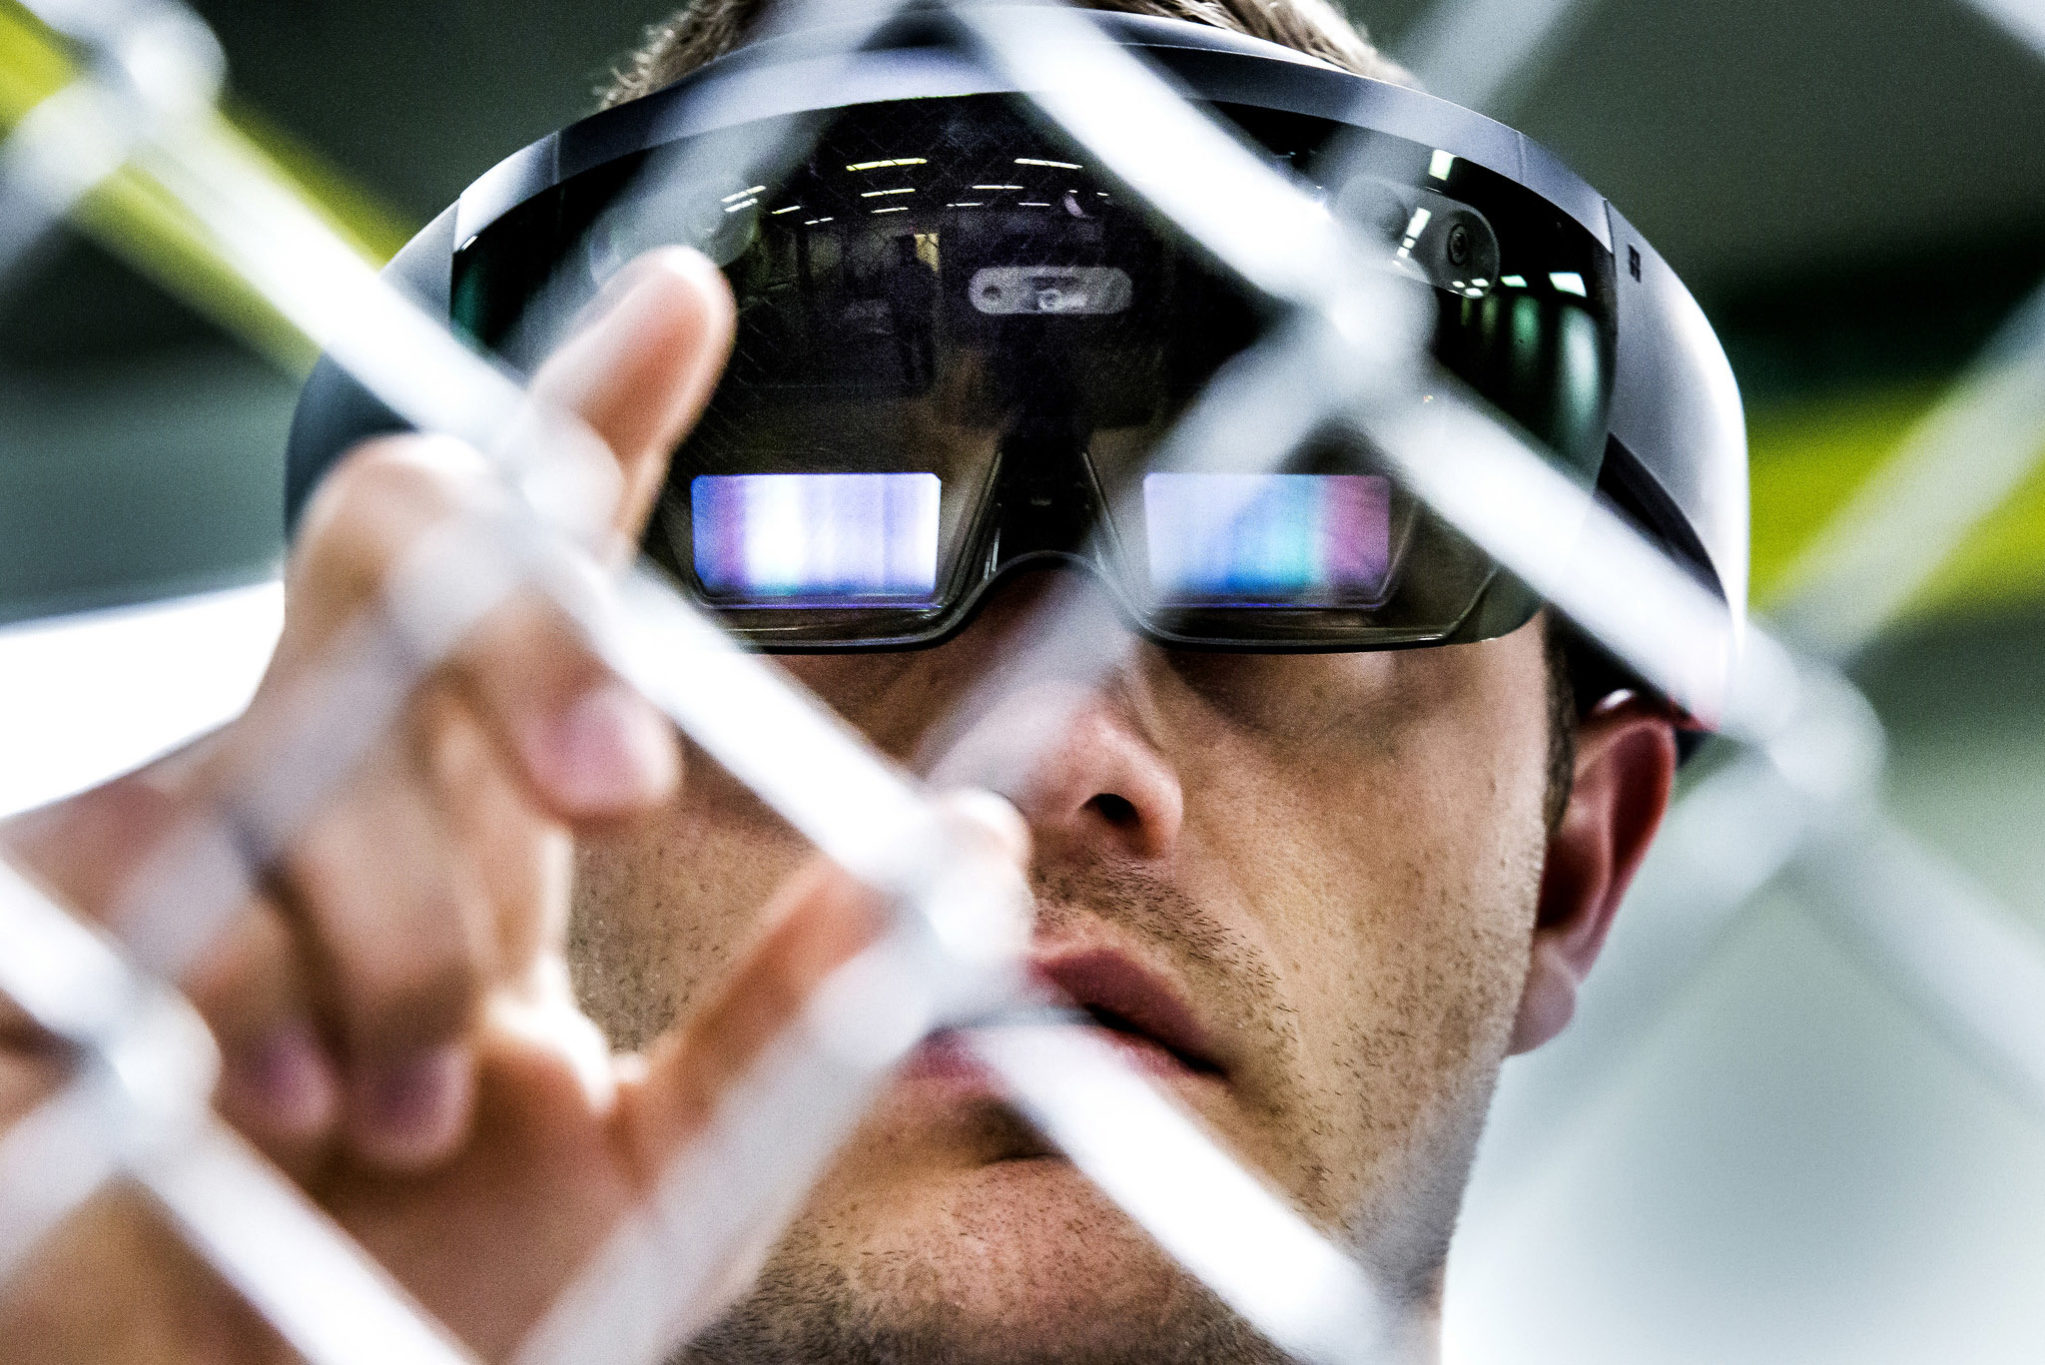 A photograph of a researcher using an augmented reality headset.